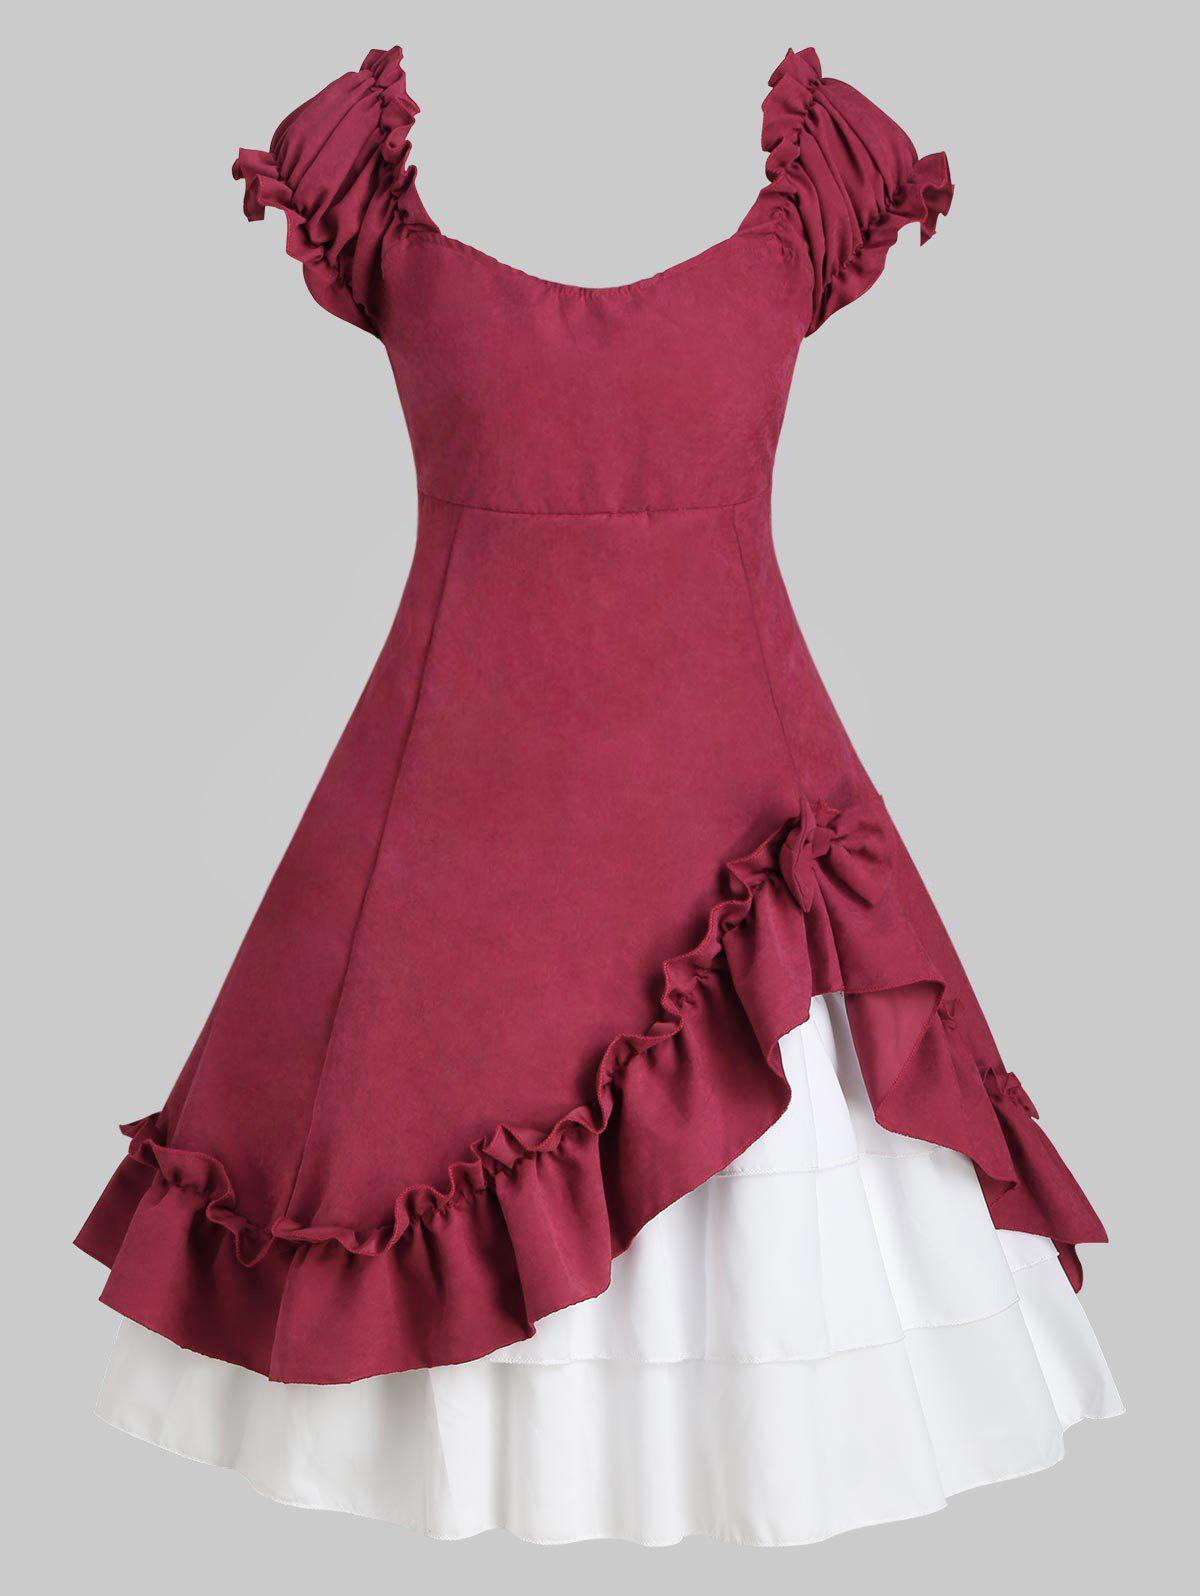 Bowknot Ruffles Tiered Vintage Dress - TULIP PINK L